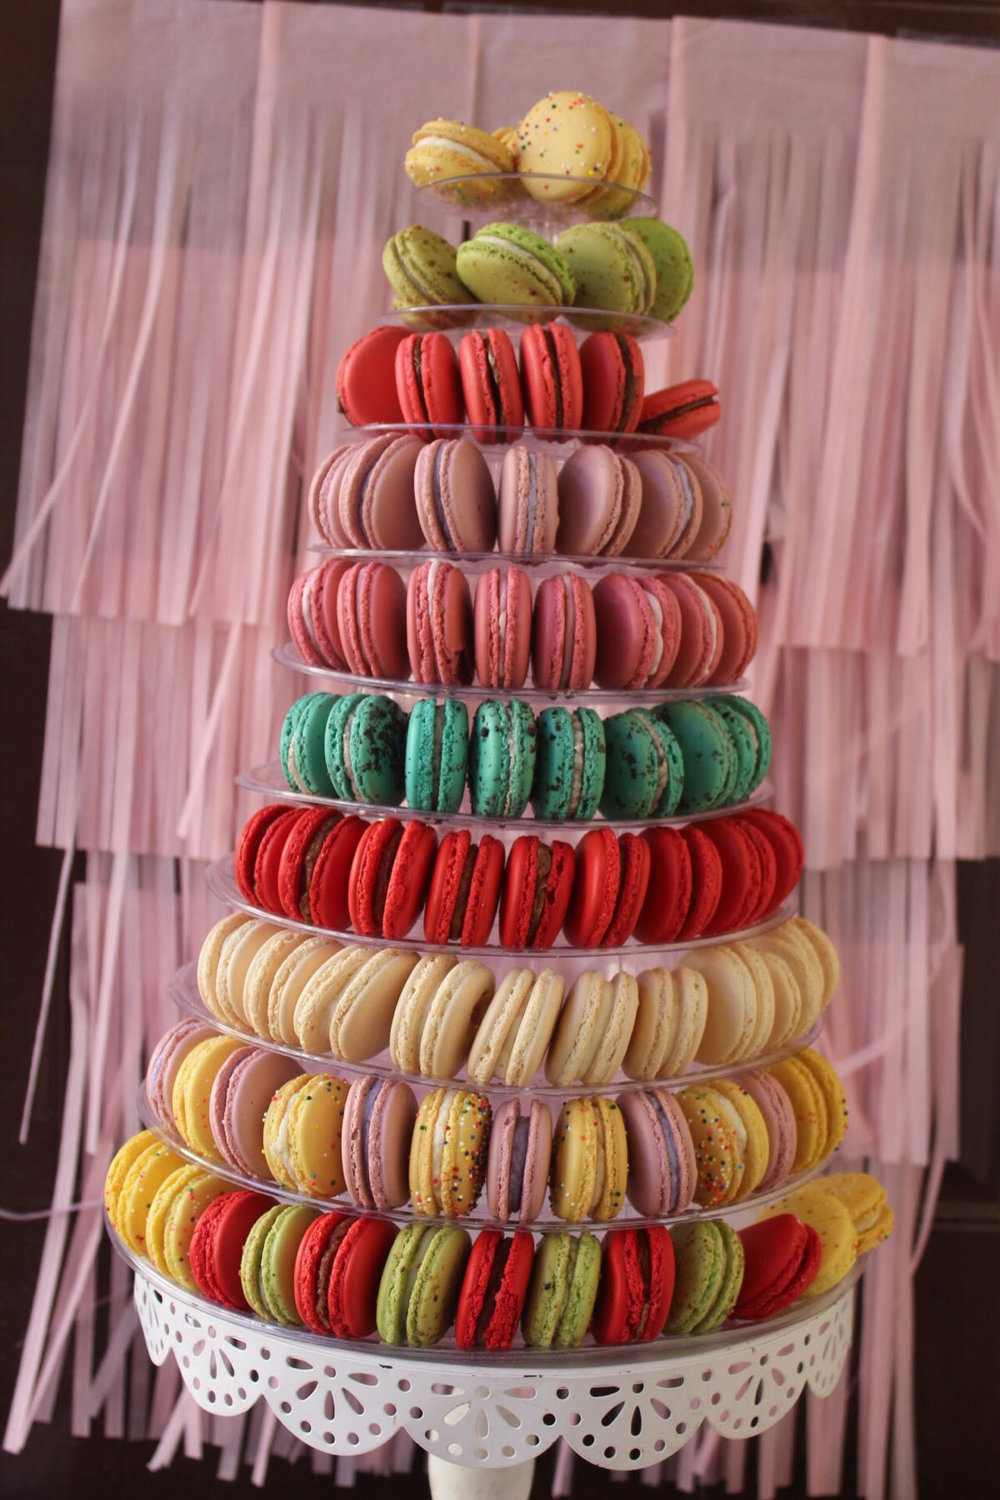 Contemporary Macaron Tower - Choose between 3-12 dozen macarons to assemble on an acrylic macaron tower.